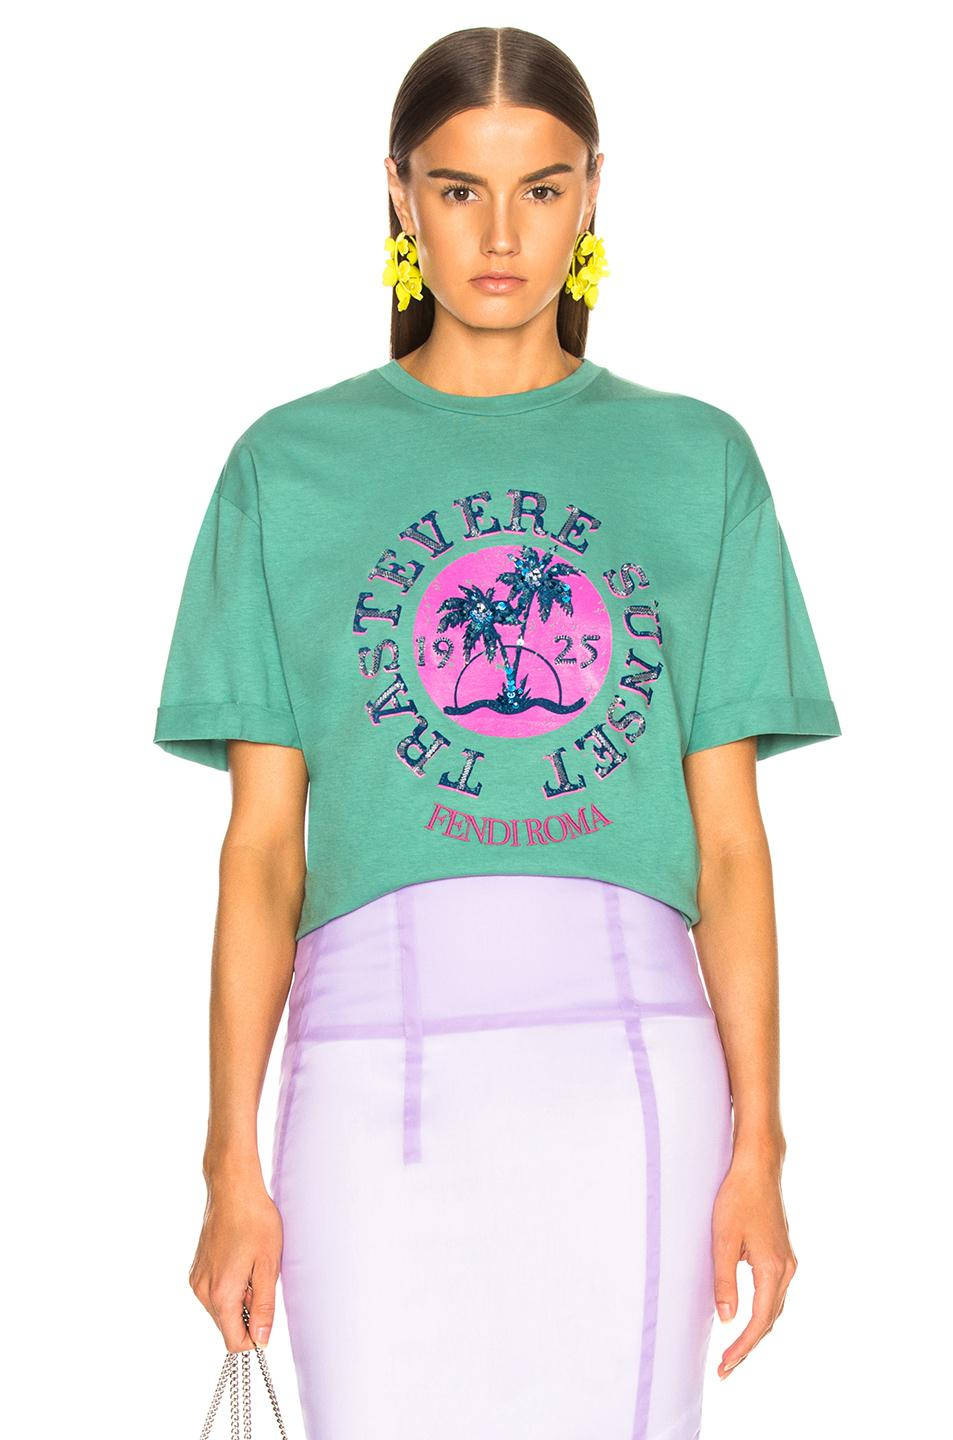 e05ccce0 Fendi Trastevere Sunset Embellished Graphic Tee in Green - Lyst